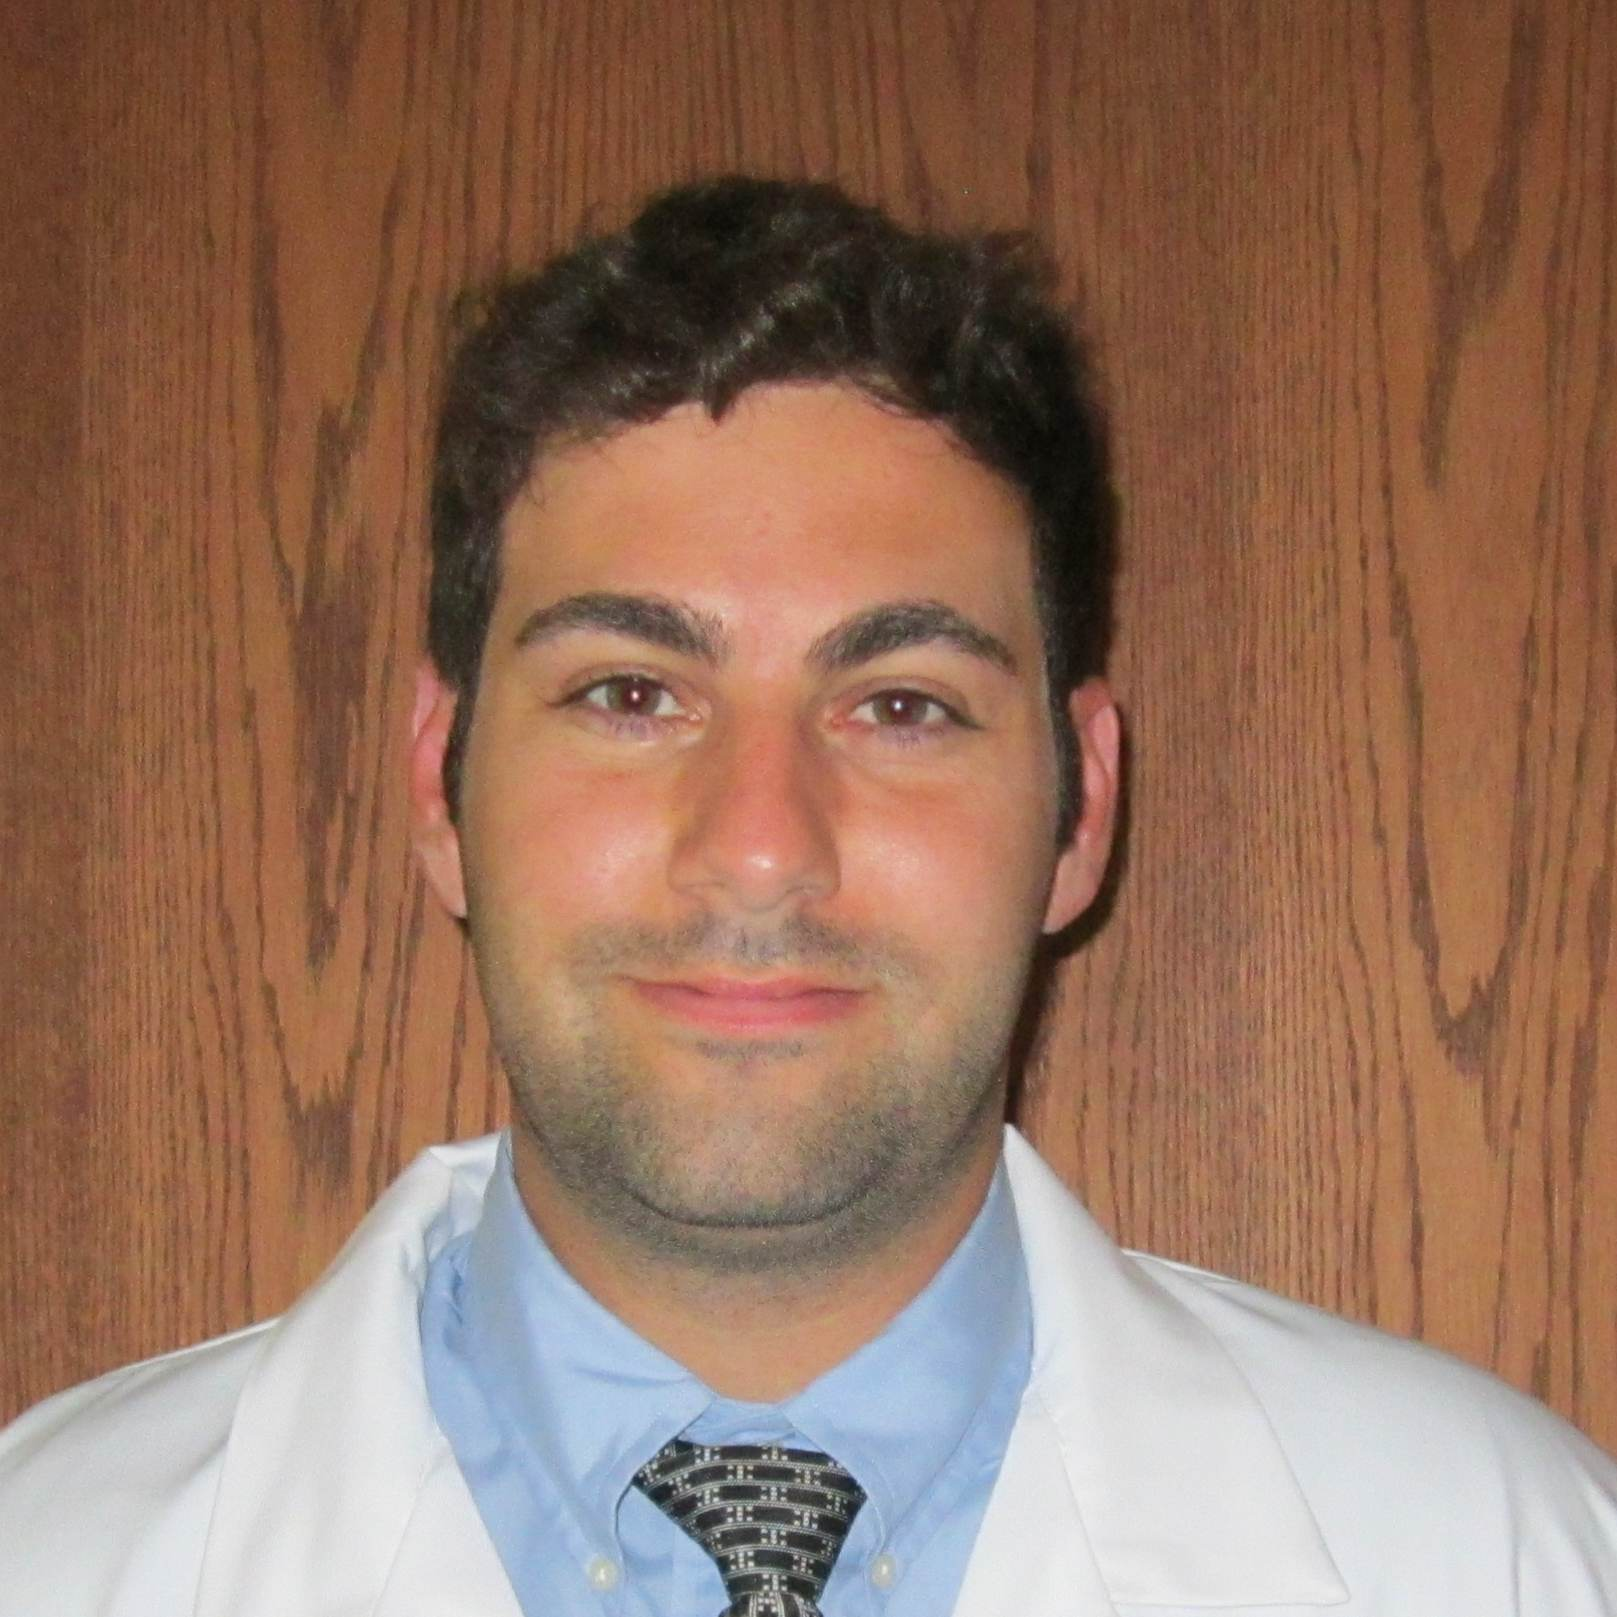 Jason Gordon, MD - CHIEF RESIDENTHometown: Deerfield, IllinoisUndergraduate: University of Illinois at Urbana ChampaignMedical School: Chicago Medical SchoolHobbies: Golf, Horse racing, Fantasy sports, Watching action movies, Boxing